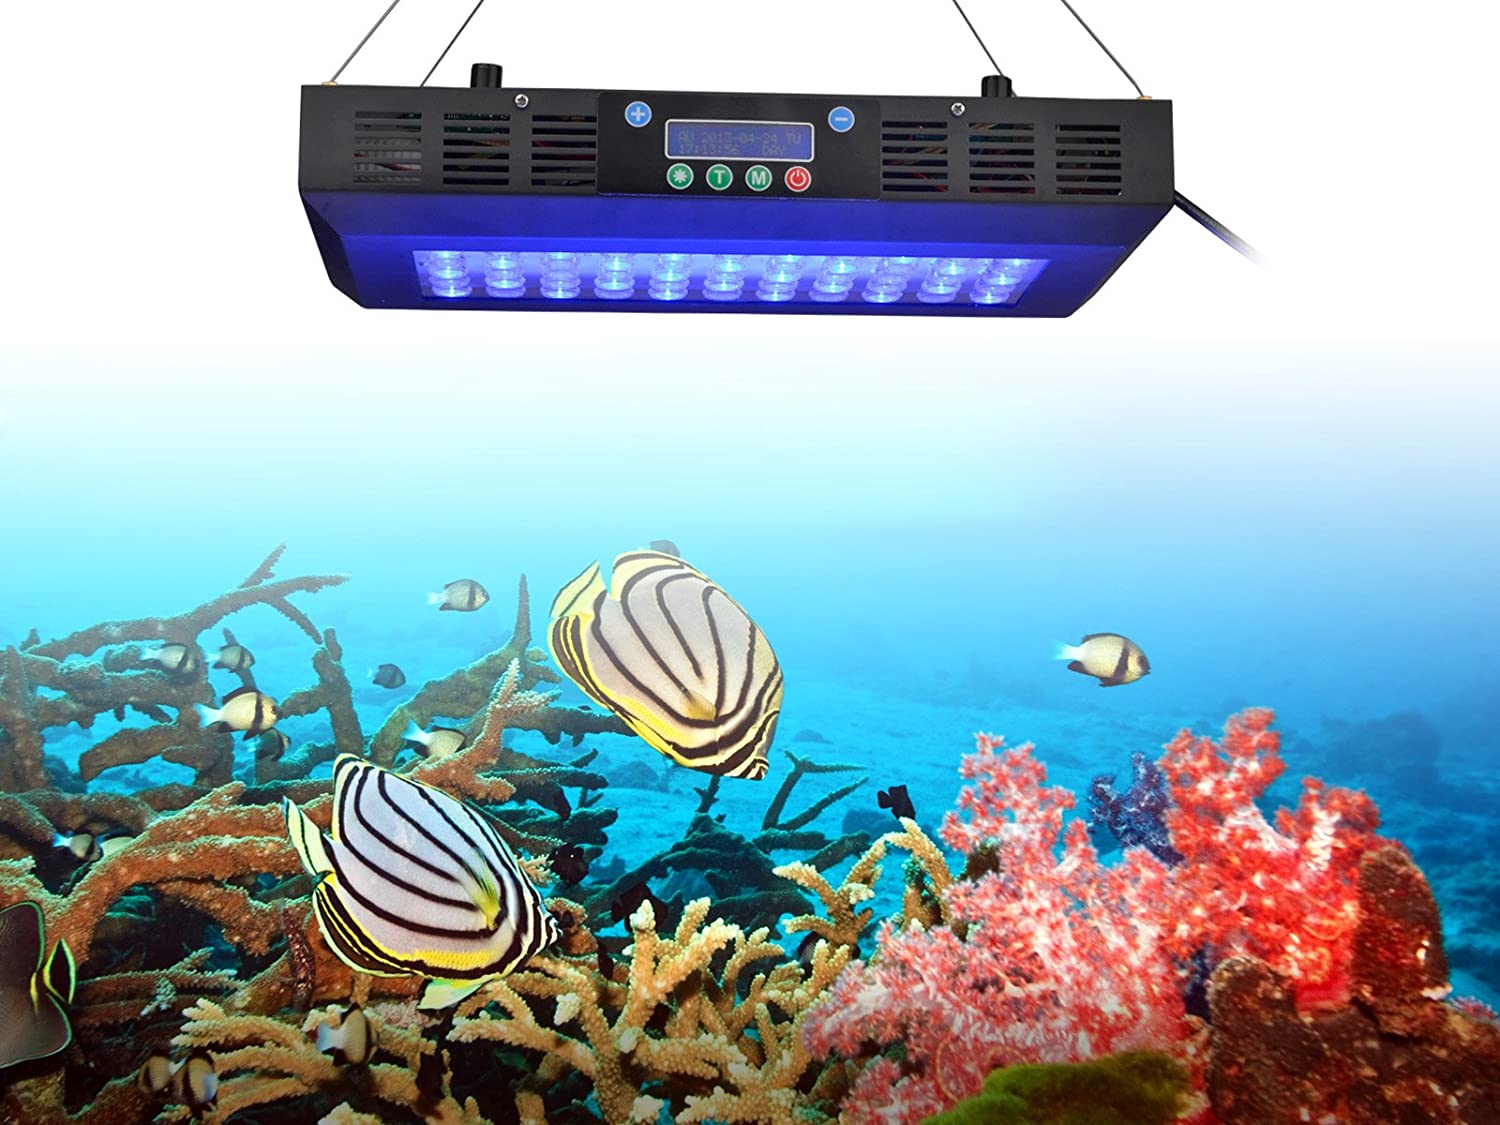 TaoTronics® TT-AL16 Dimmable Timmer Led Aquarium Light Coral Reef Tank Light with Moonlights,120W Dimmable with Inner Digital Timer, Optical lens in High Par Value (Dimmable and Timmer)